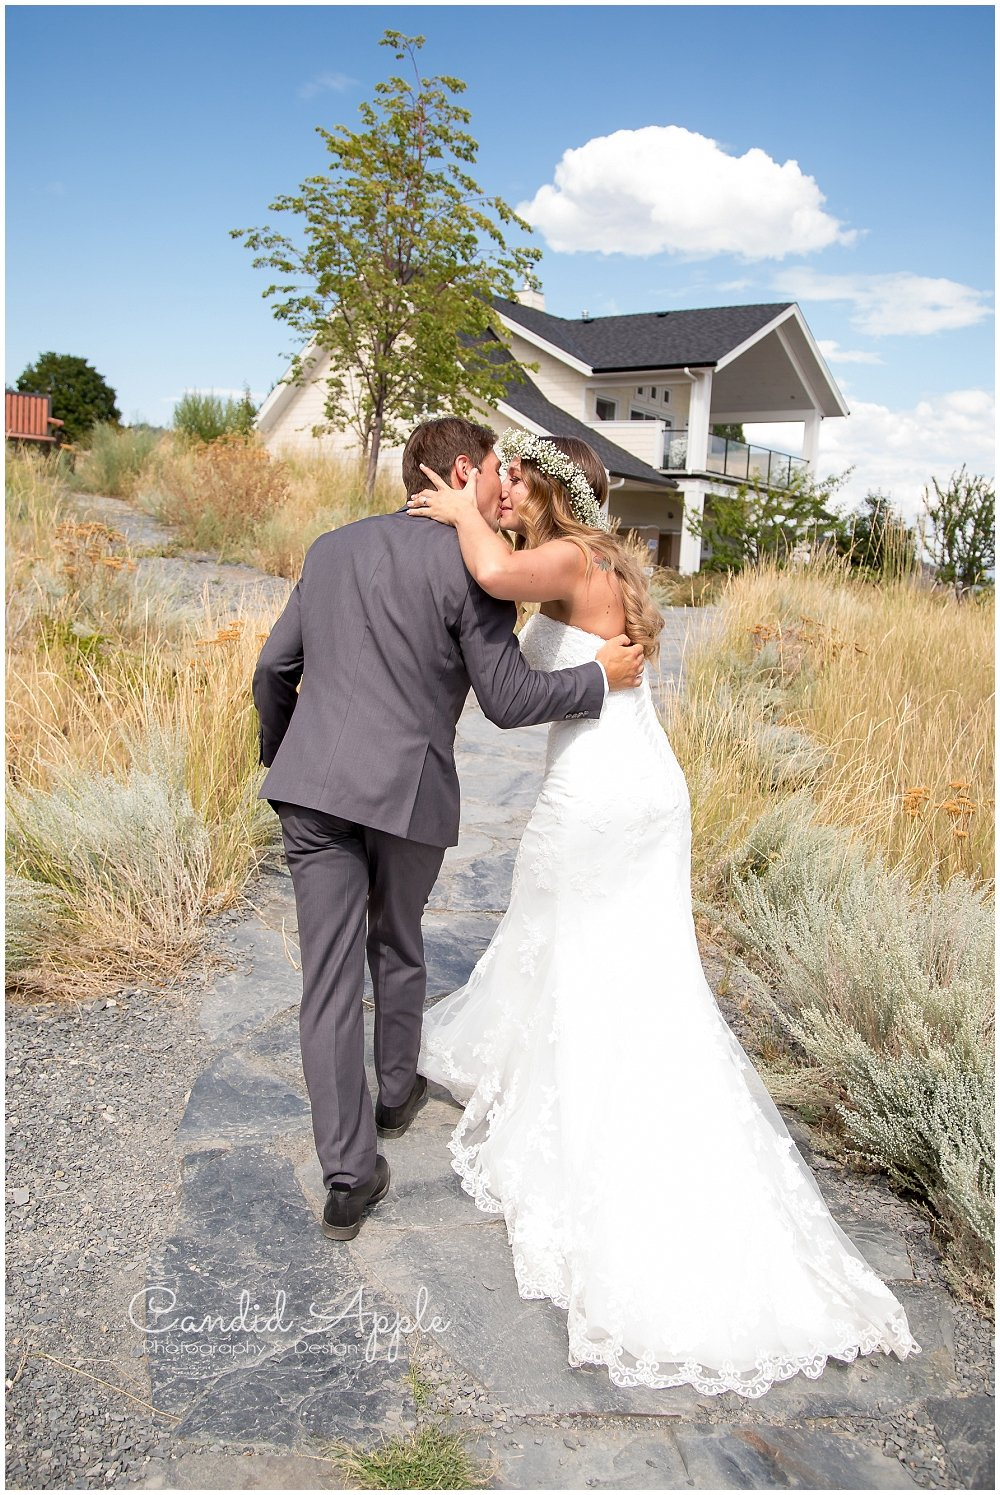 Sanctuary_Garden_West_Kelowna_Candid_Apple_Wedding_Photography_0047